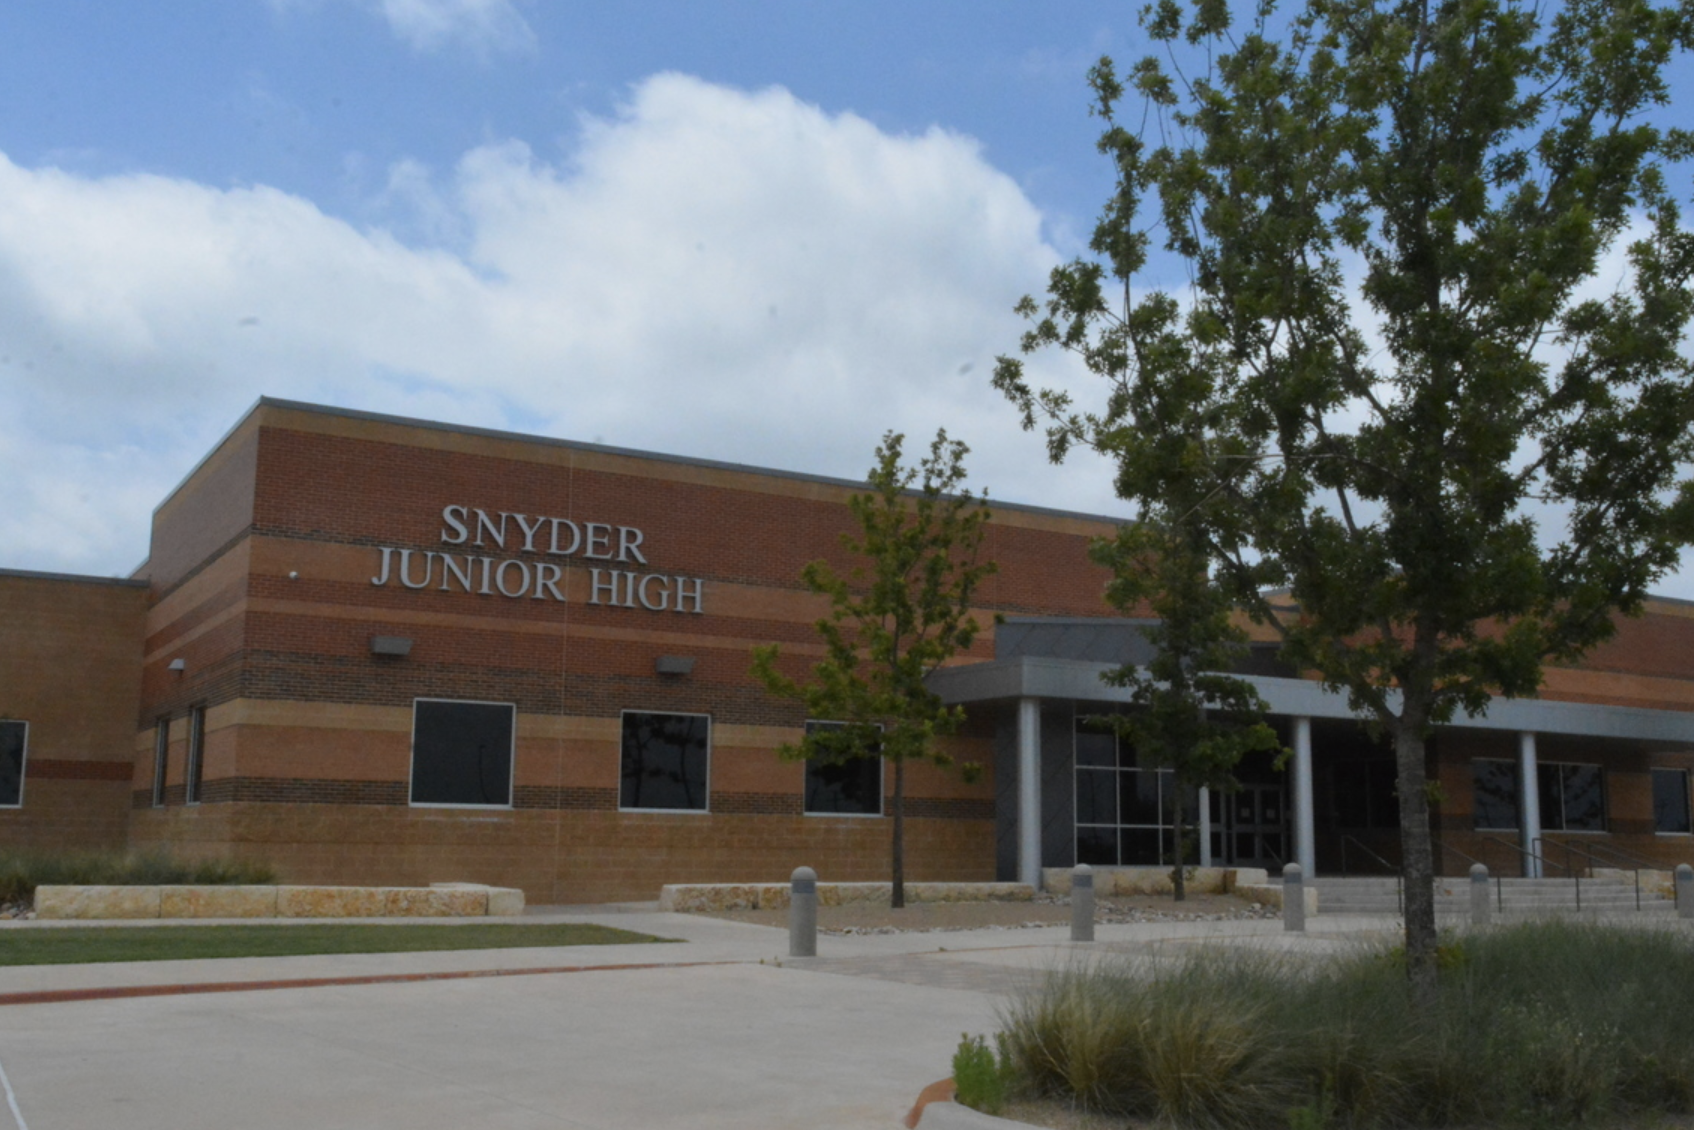 Snyder Junior High